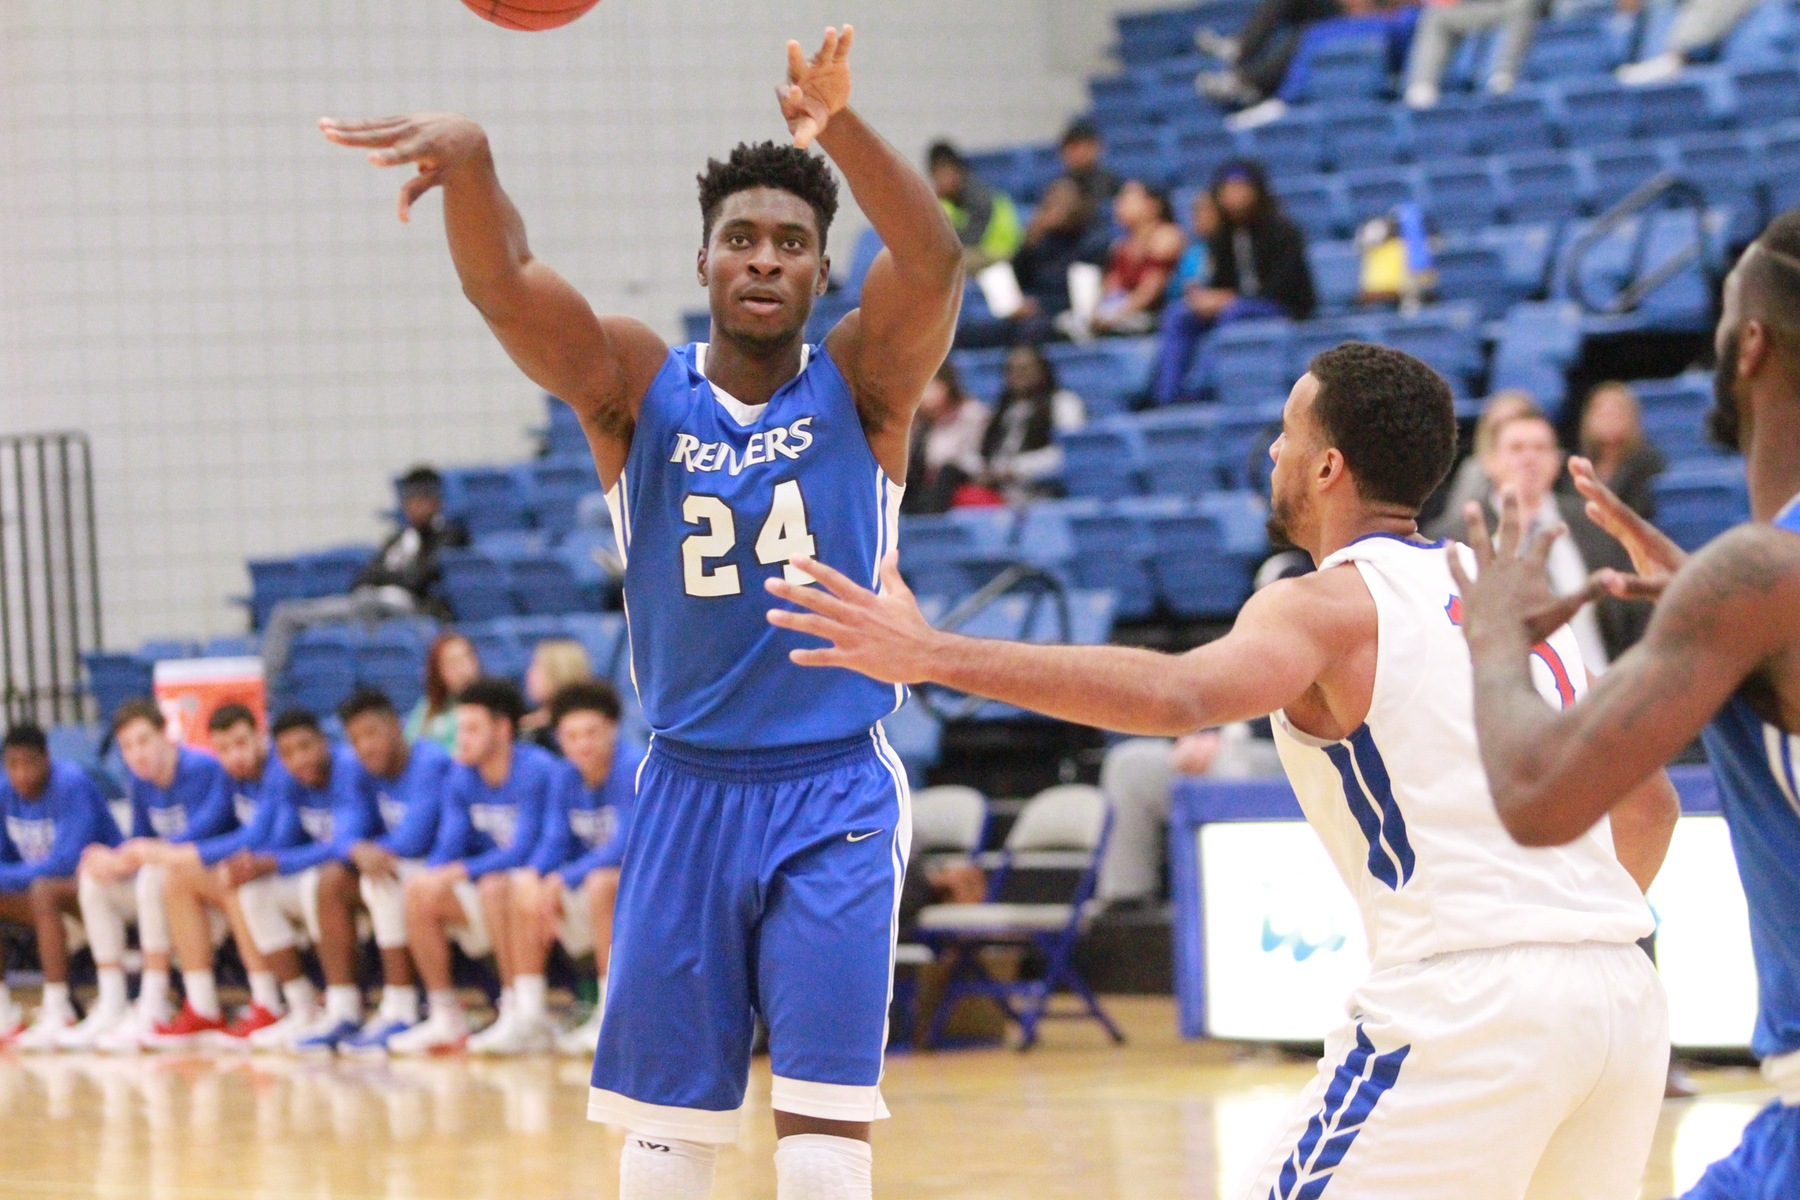 Emmanuel Ugboh scored 12 points, grabbed 8 rebounds, and blocked 6 shots in Iowa Western's road victory at Central (NE) Tuesday night.